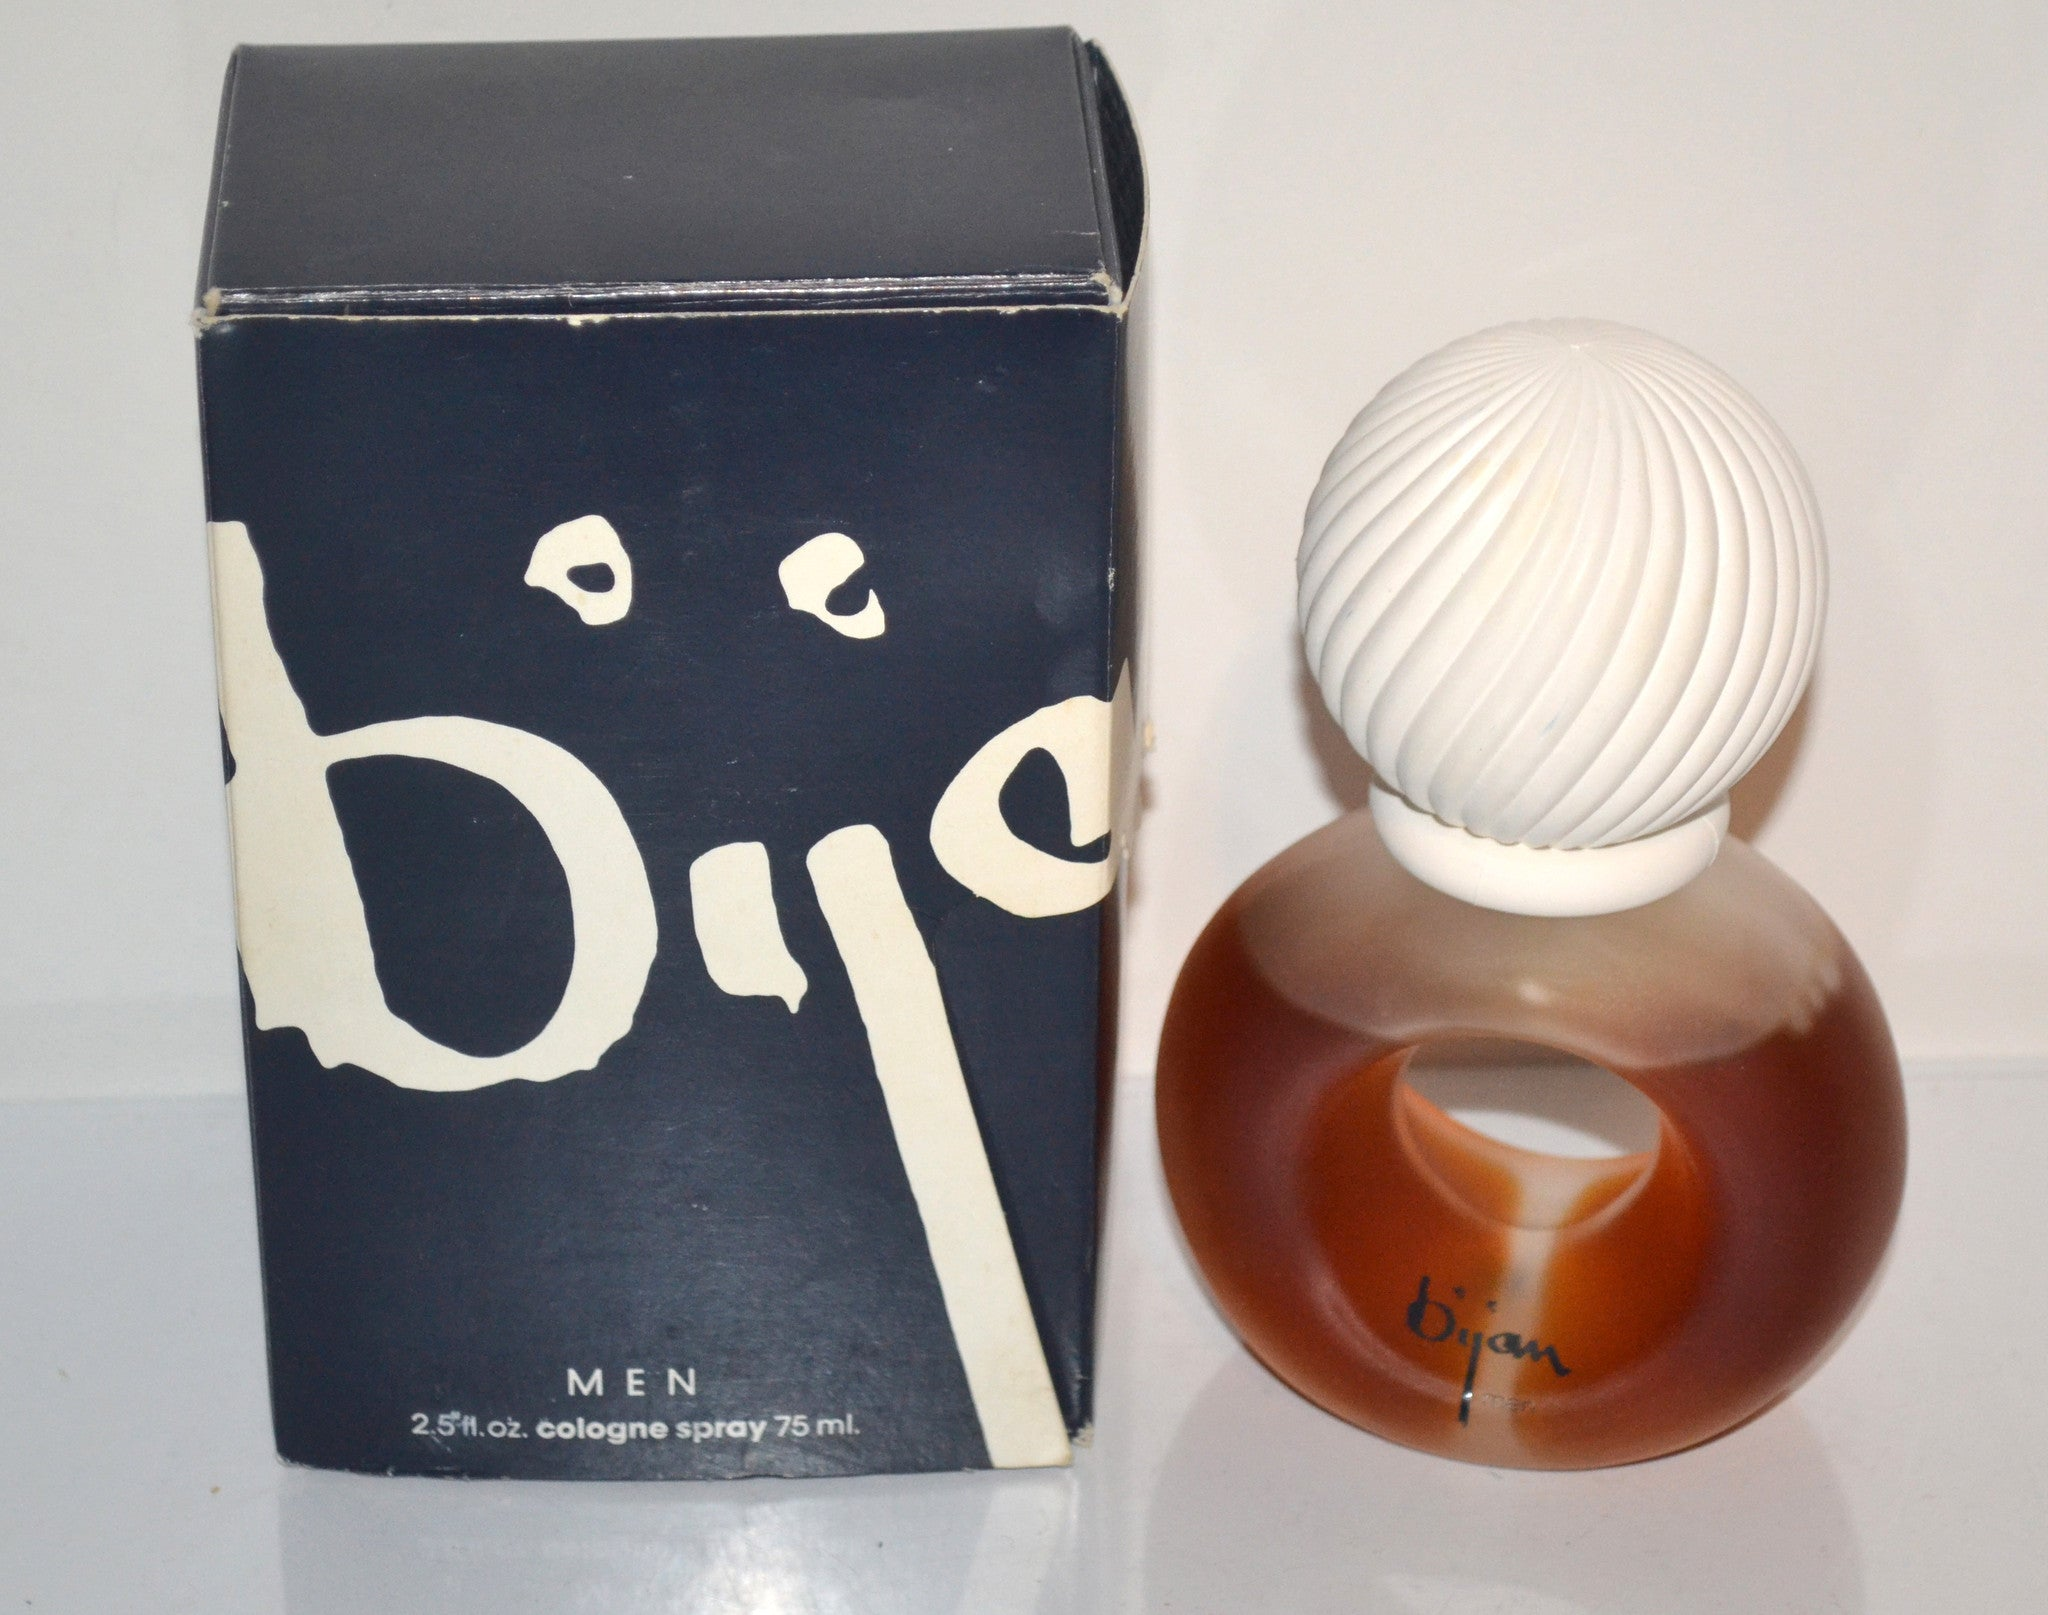 Bijan cologne naked